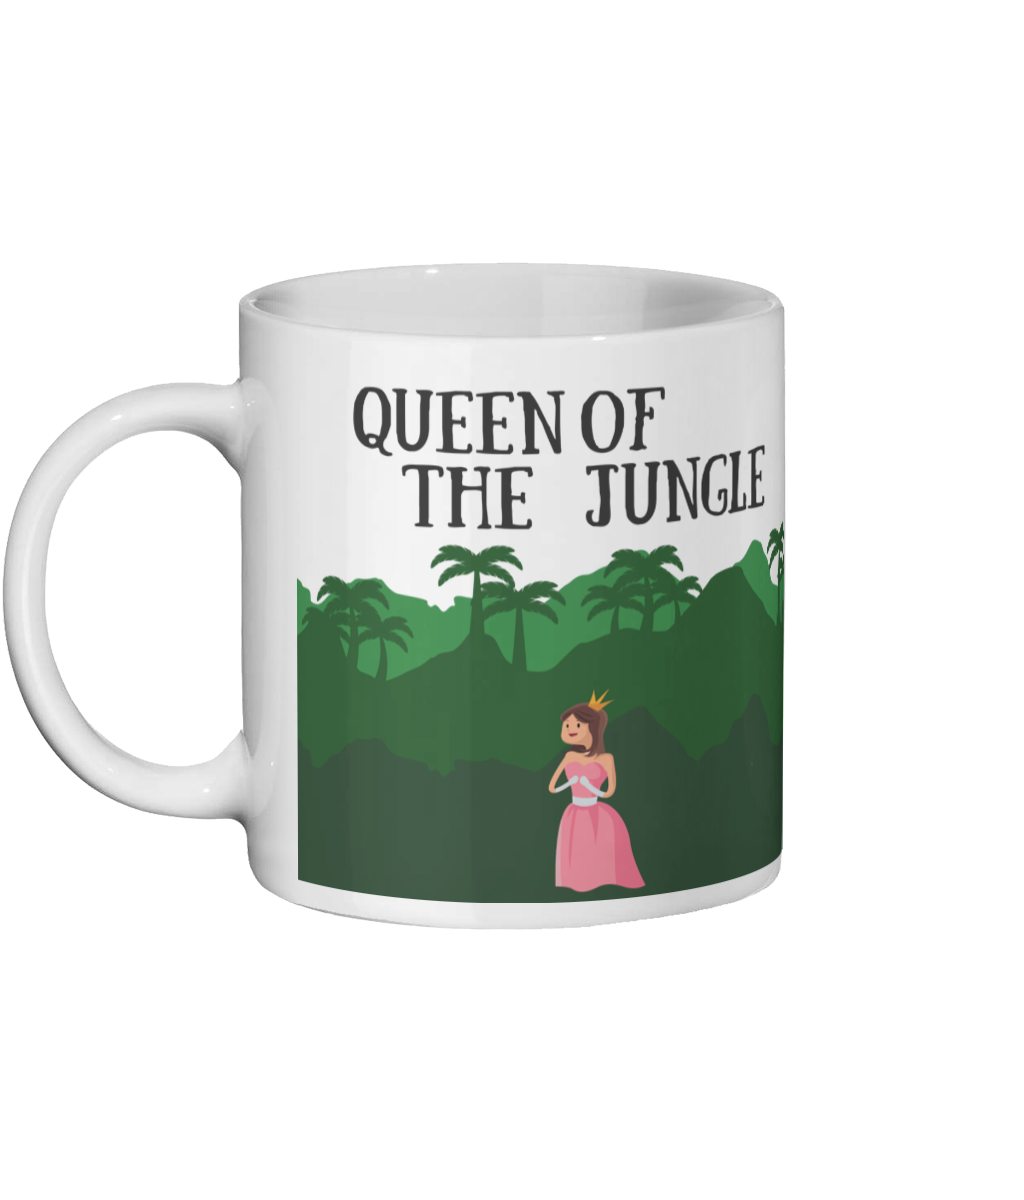 Queen Of The Jungle Mug Left-side